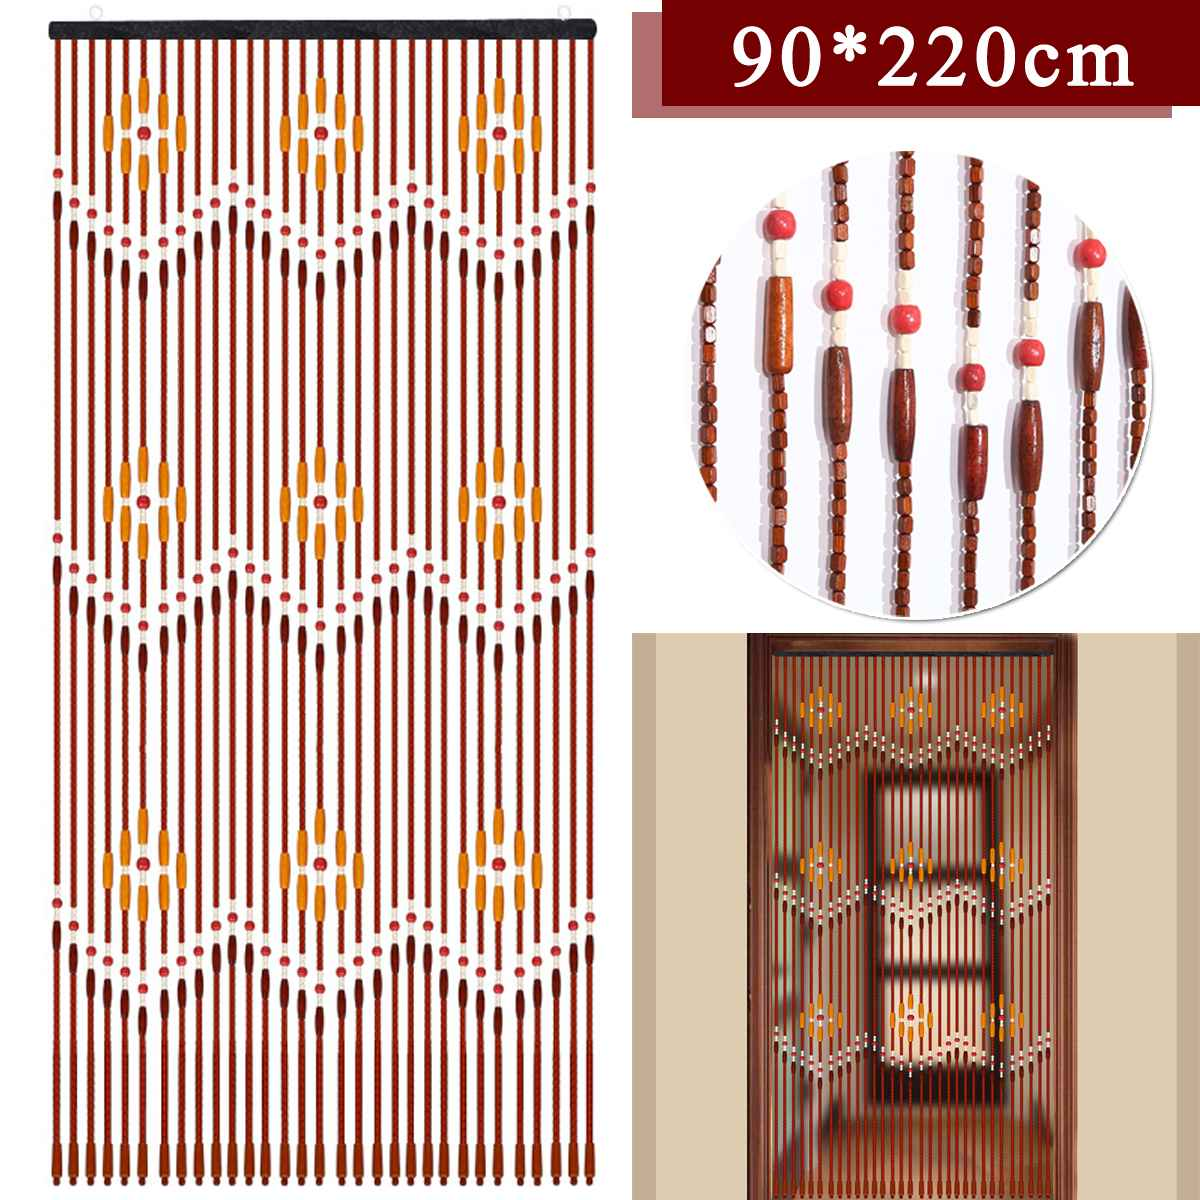 Bead Curtains Blinds Gate-Divider Fly-Screen Wooden Sheer Door Window Living-Room Hallway title=